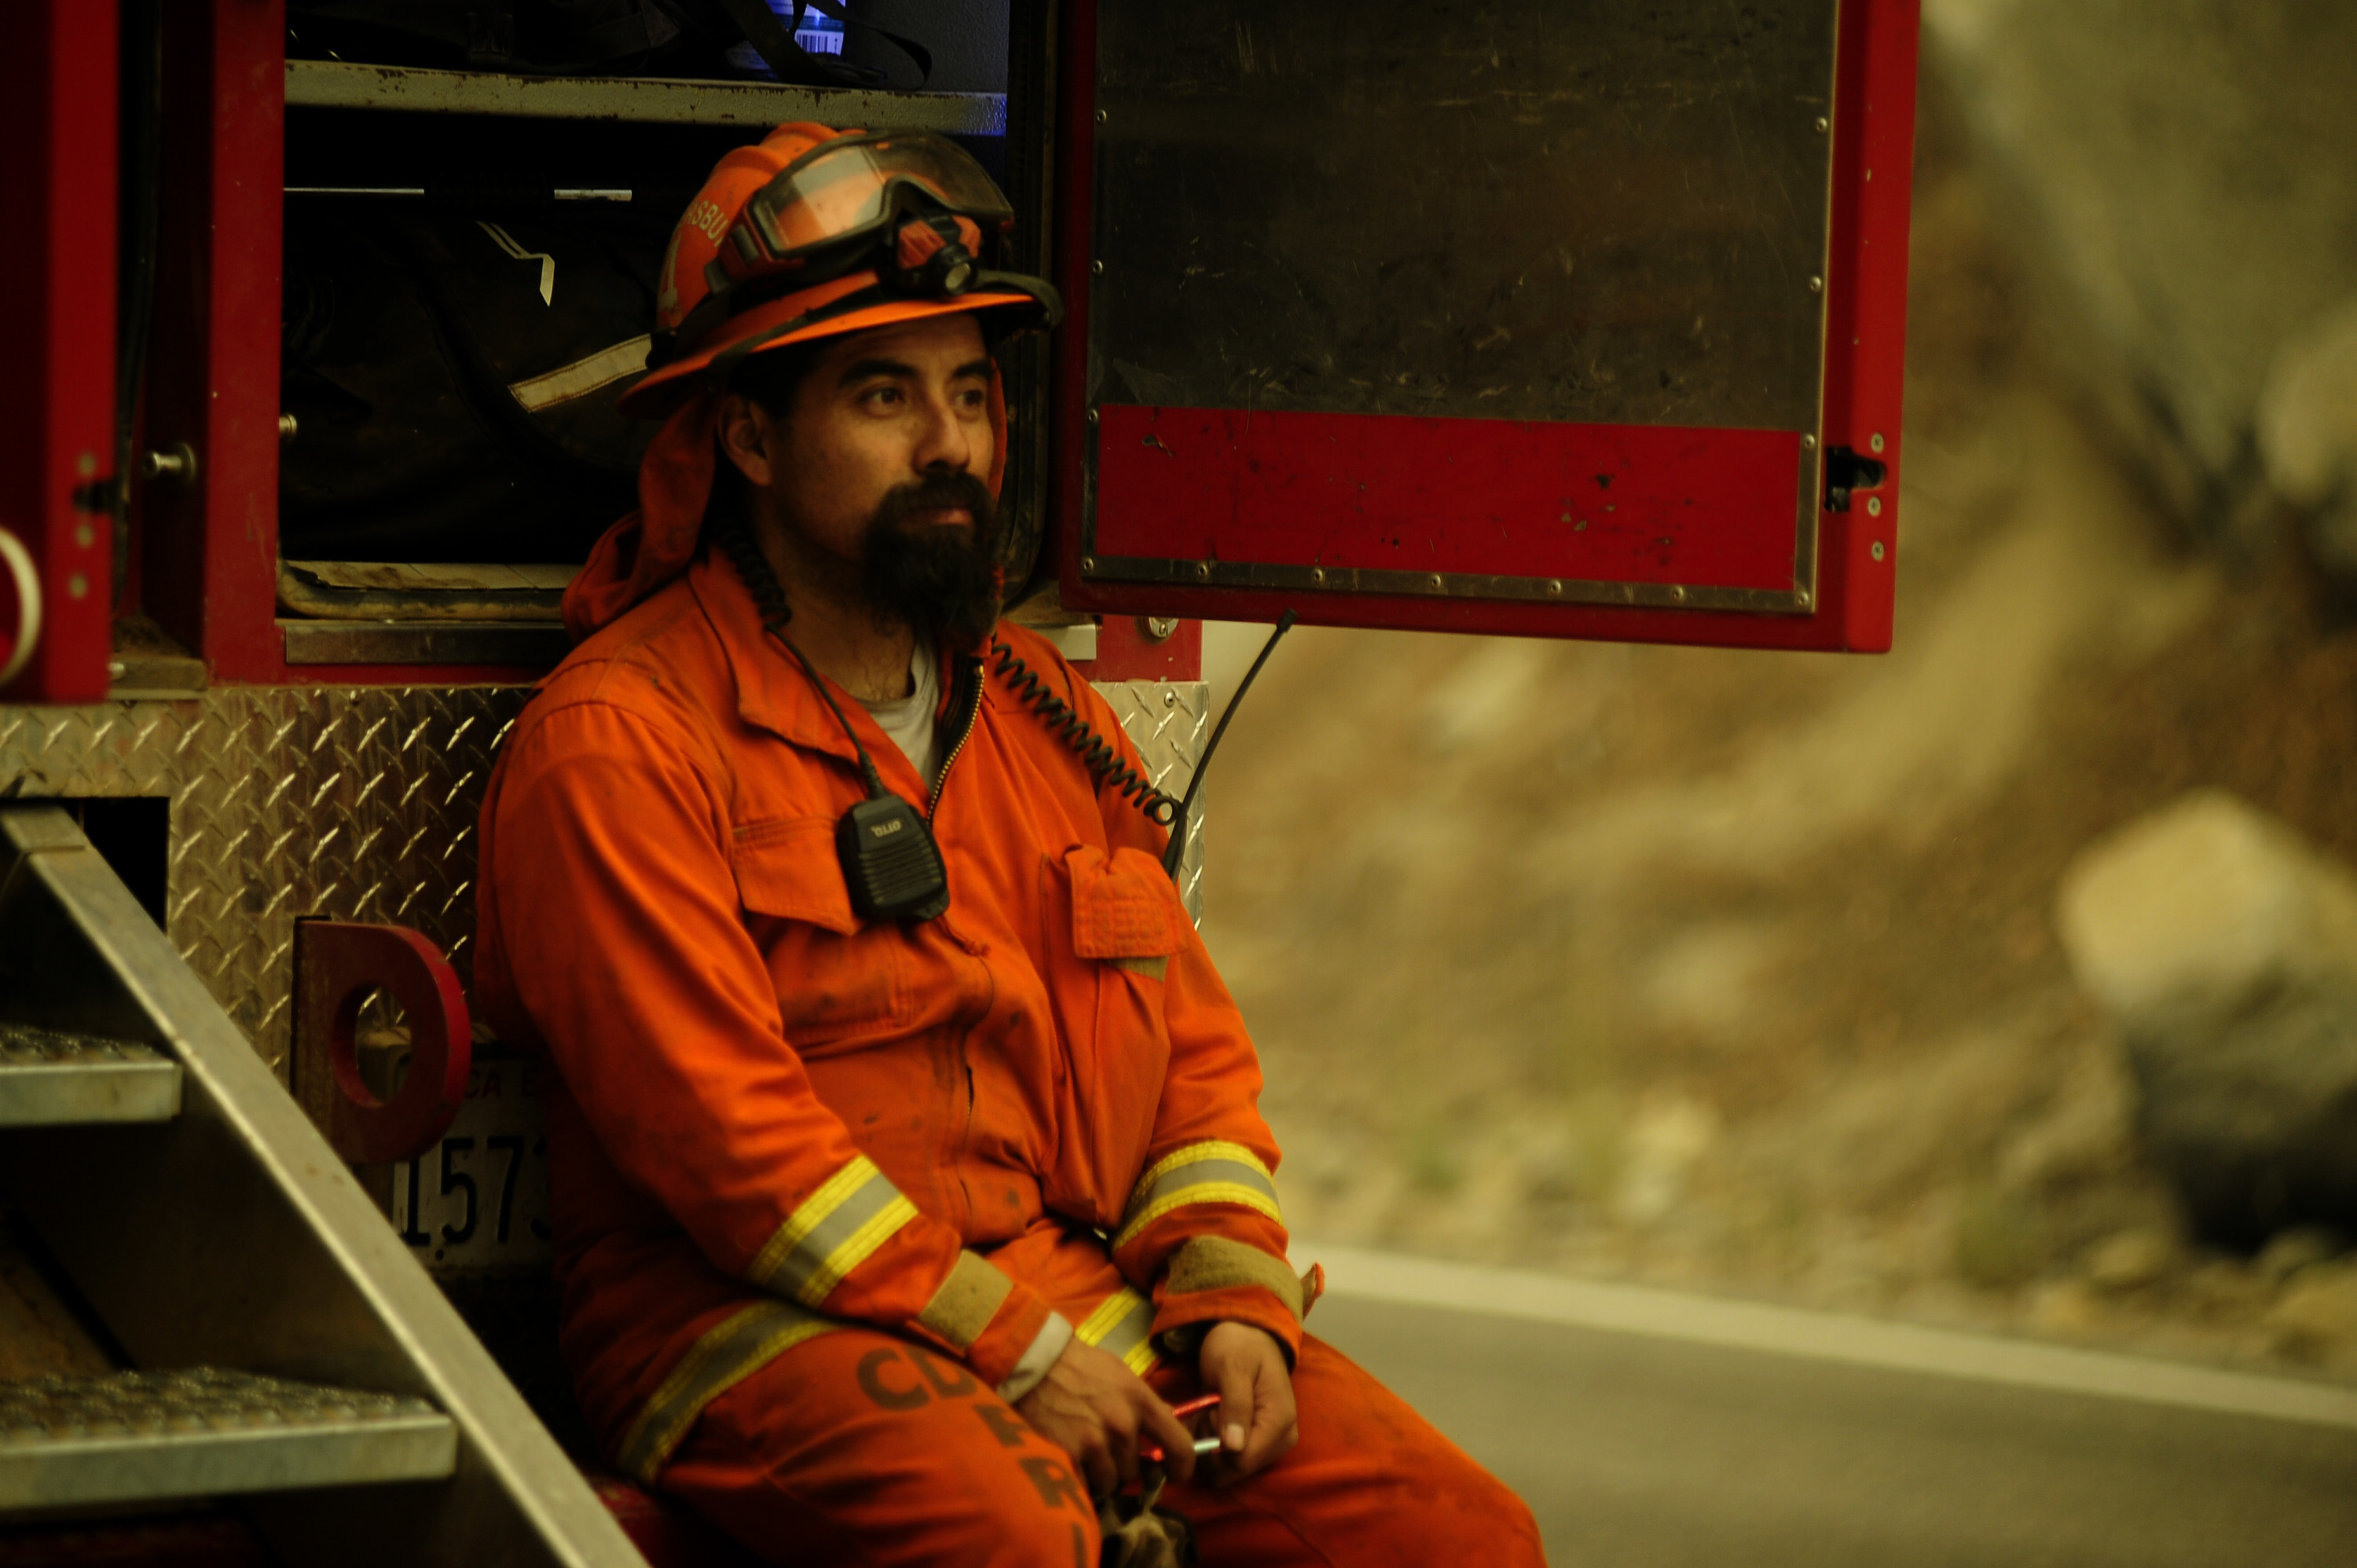 A firefighter in uniform sits on the back of a truck